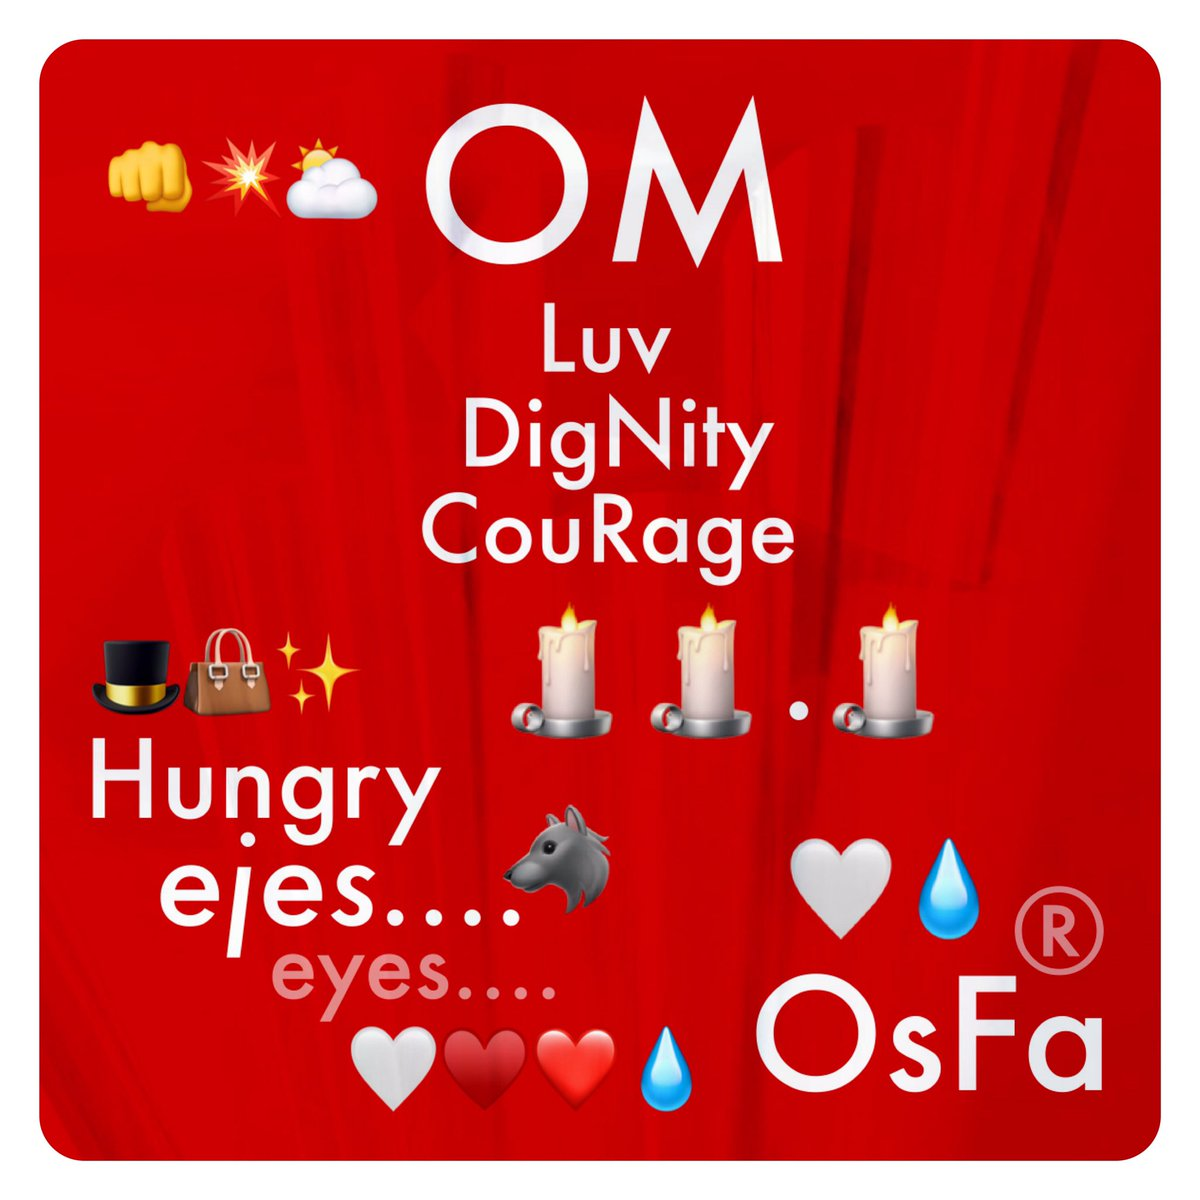 """#OM 👊❤️👍.. ..🕯🕯.🕯 """"I FeeL #the_Magic🦂 between #yoU_and_I 👊💥⛅️ I'vE gOt #Hungry_ejes🐺 #eyes 👊🏼🤜🏼✨🌟✨🤛🏻👊🏻NoW I've gOt yoU in #my_SighTs🙏🏻 mi PA #OjosBonitOS TeAMO #Óscar!!"""" 🤍🤜🏼🤛🏻🤍 🤍♥️❤️💧 🎩👜✨ w #Luv #DigNity #CouRage #El_MagO #LObitO #OnicO #OMLegacy By #OsFa® 🤍💧"""